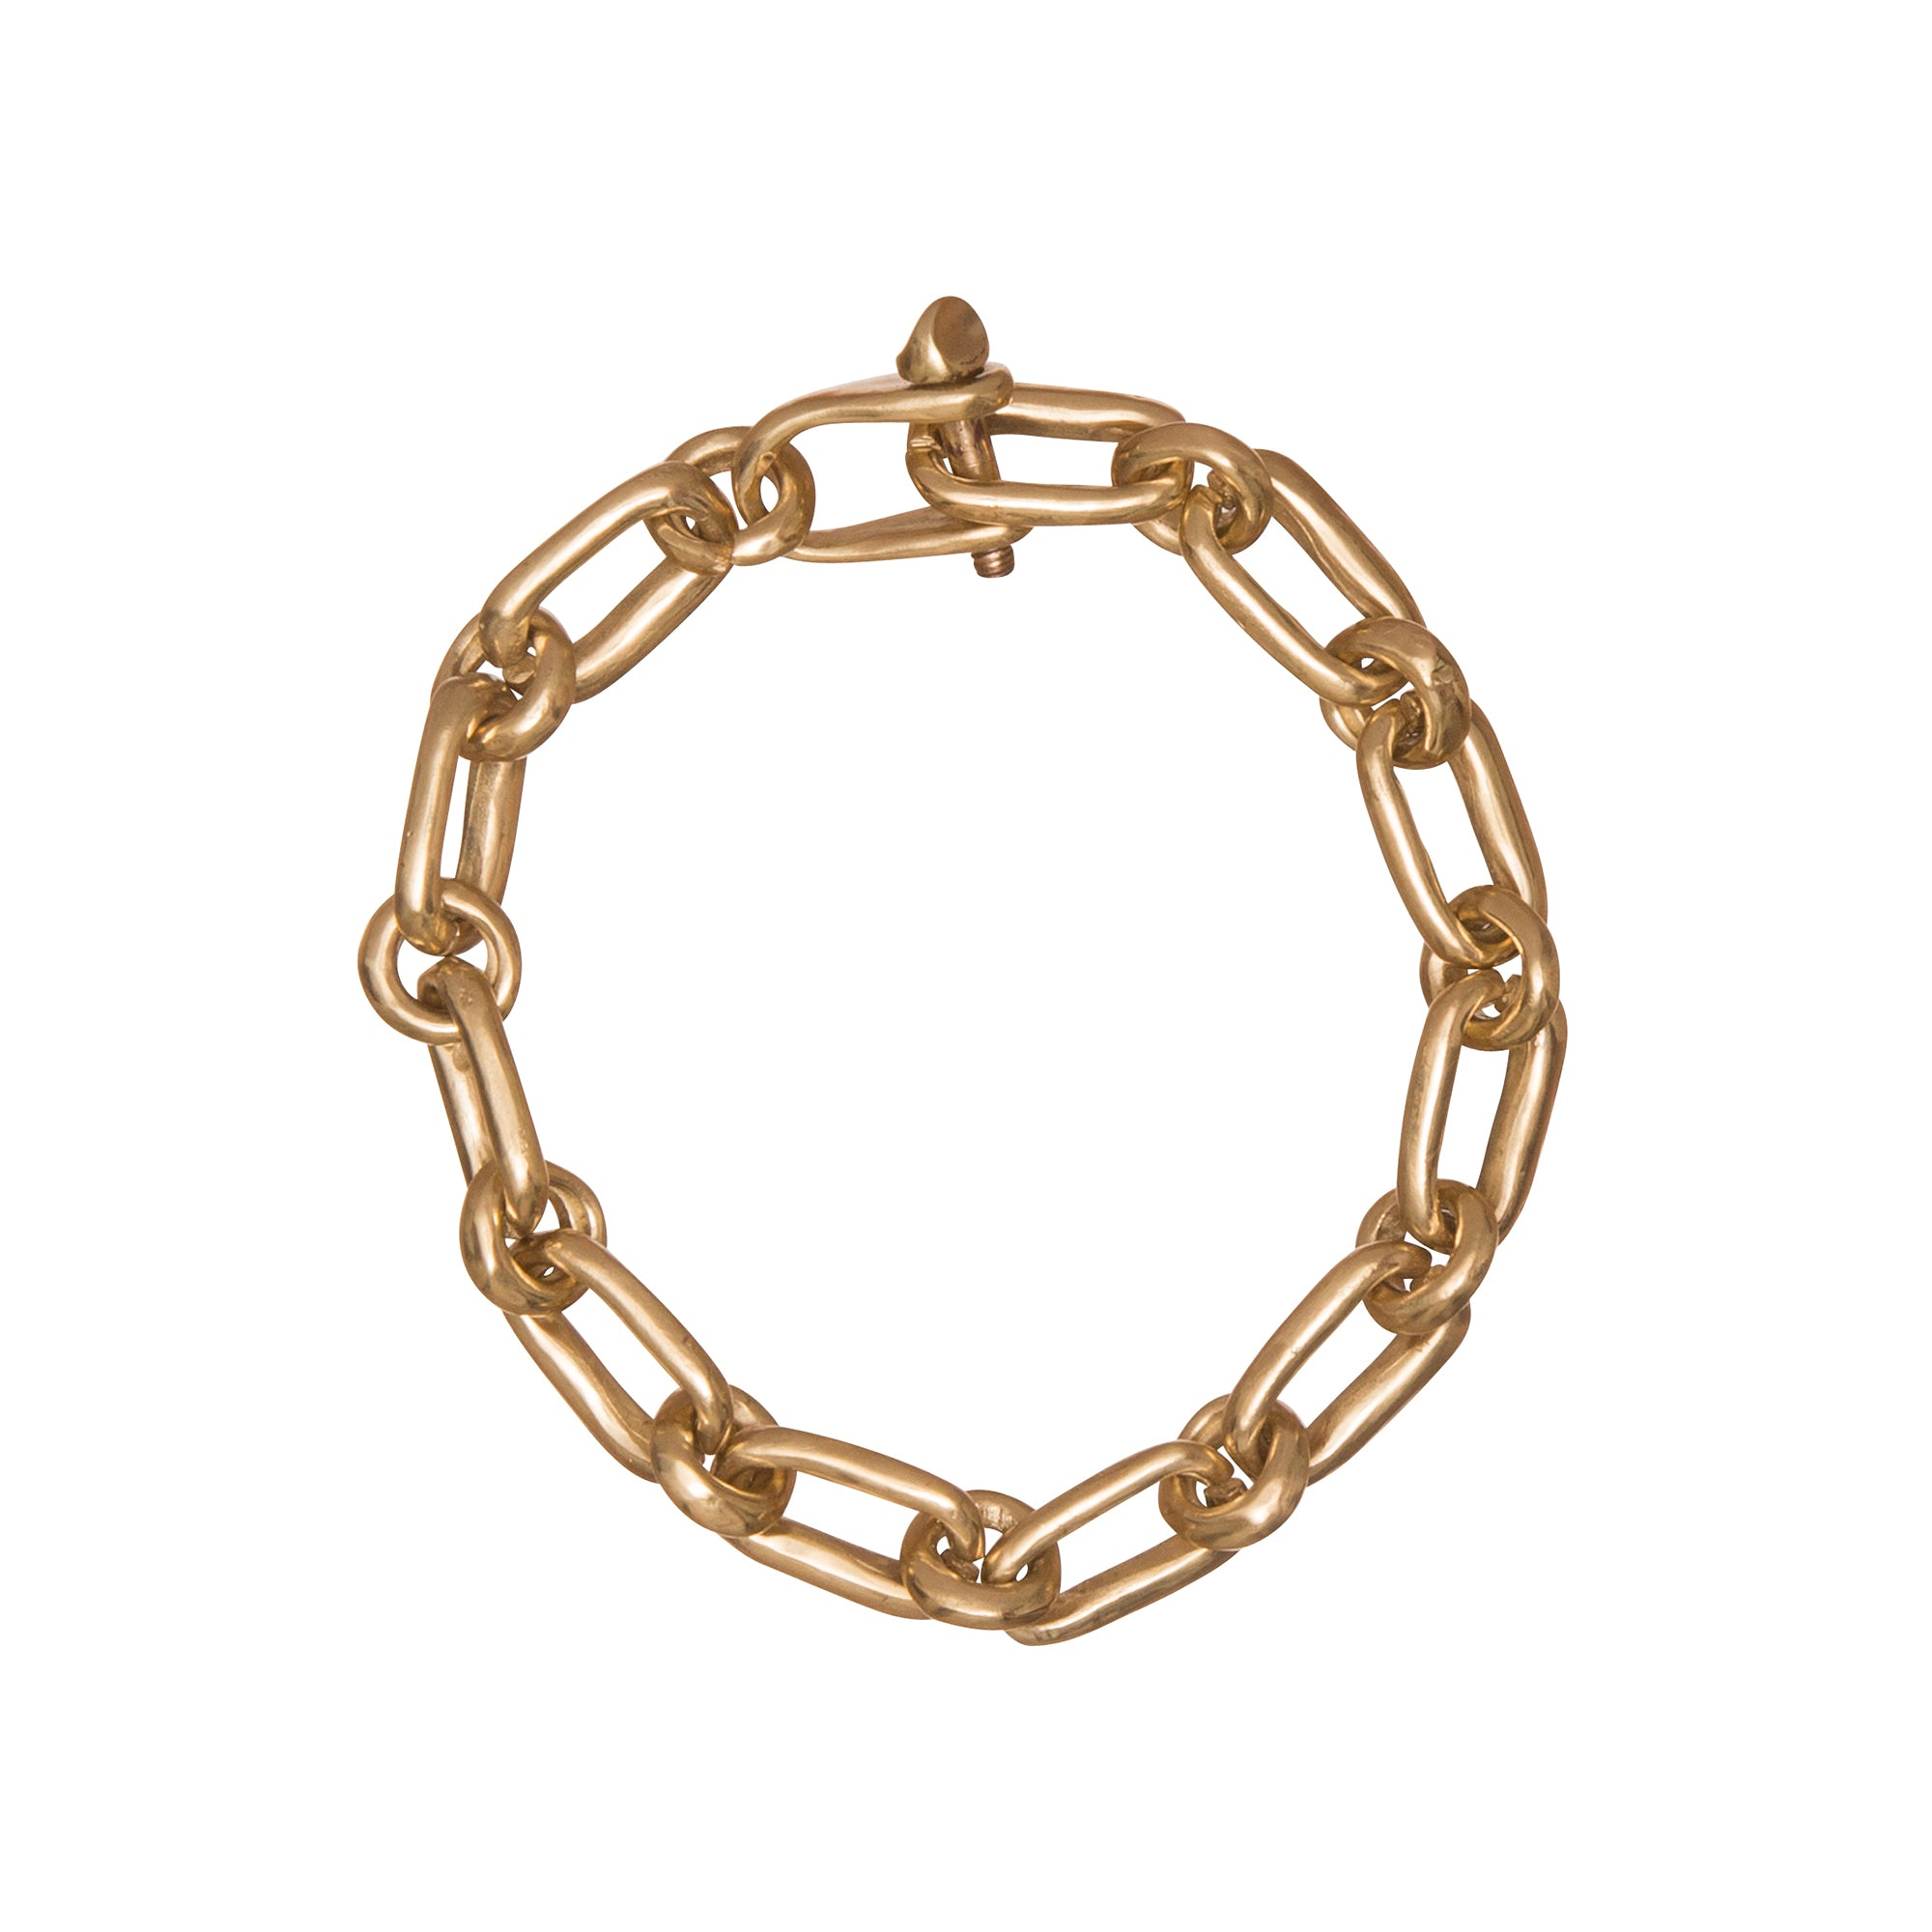 Medium Rumble Chain by James Colarusso for Broken English Jewelry